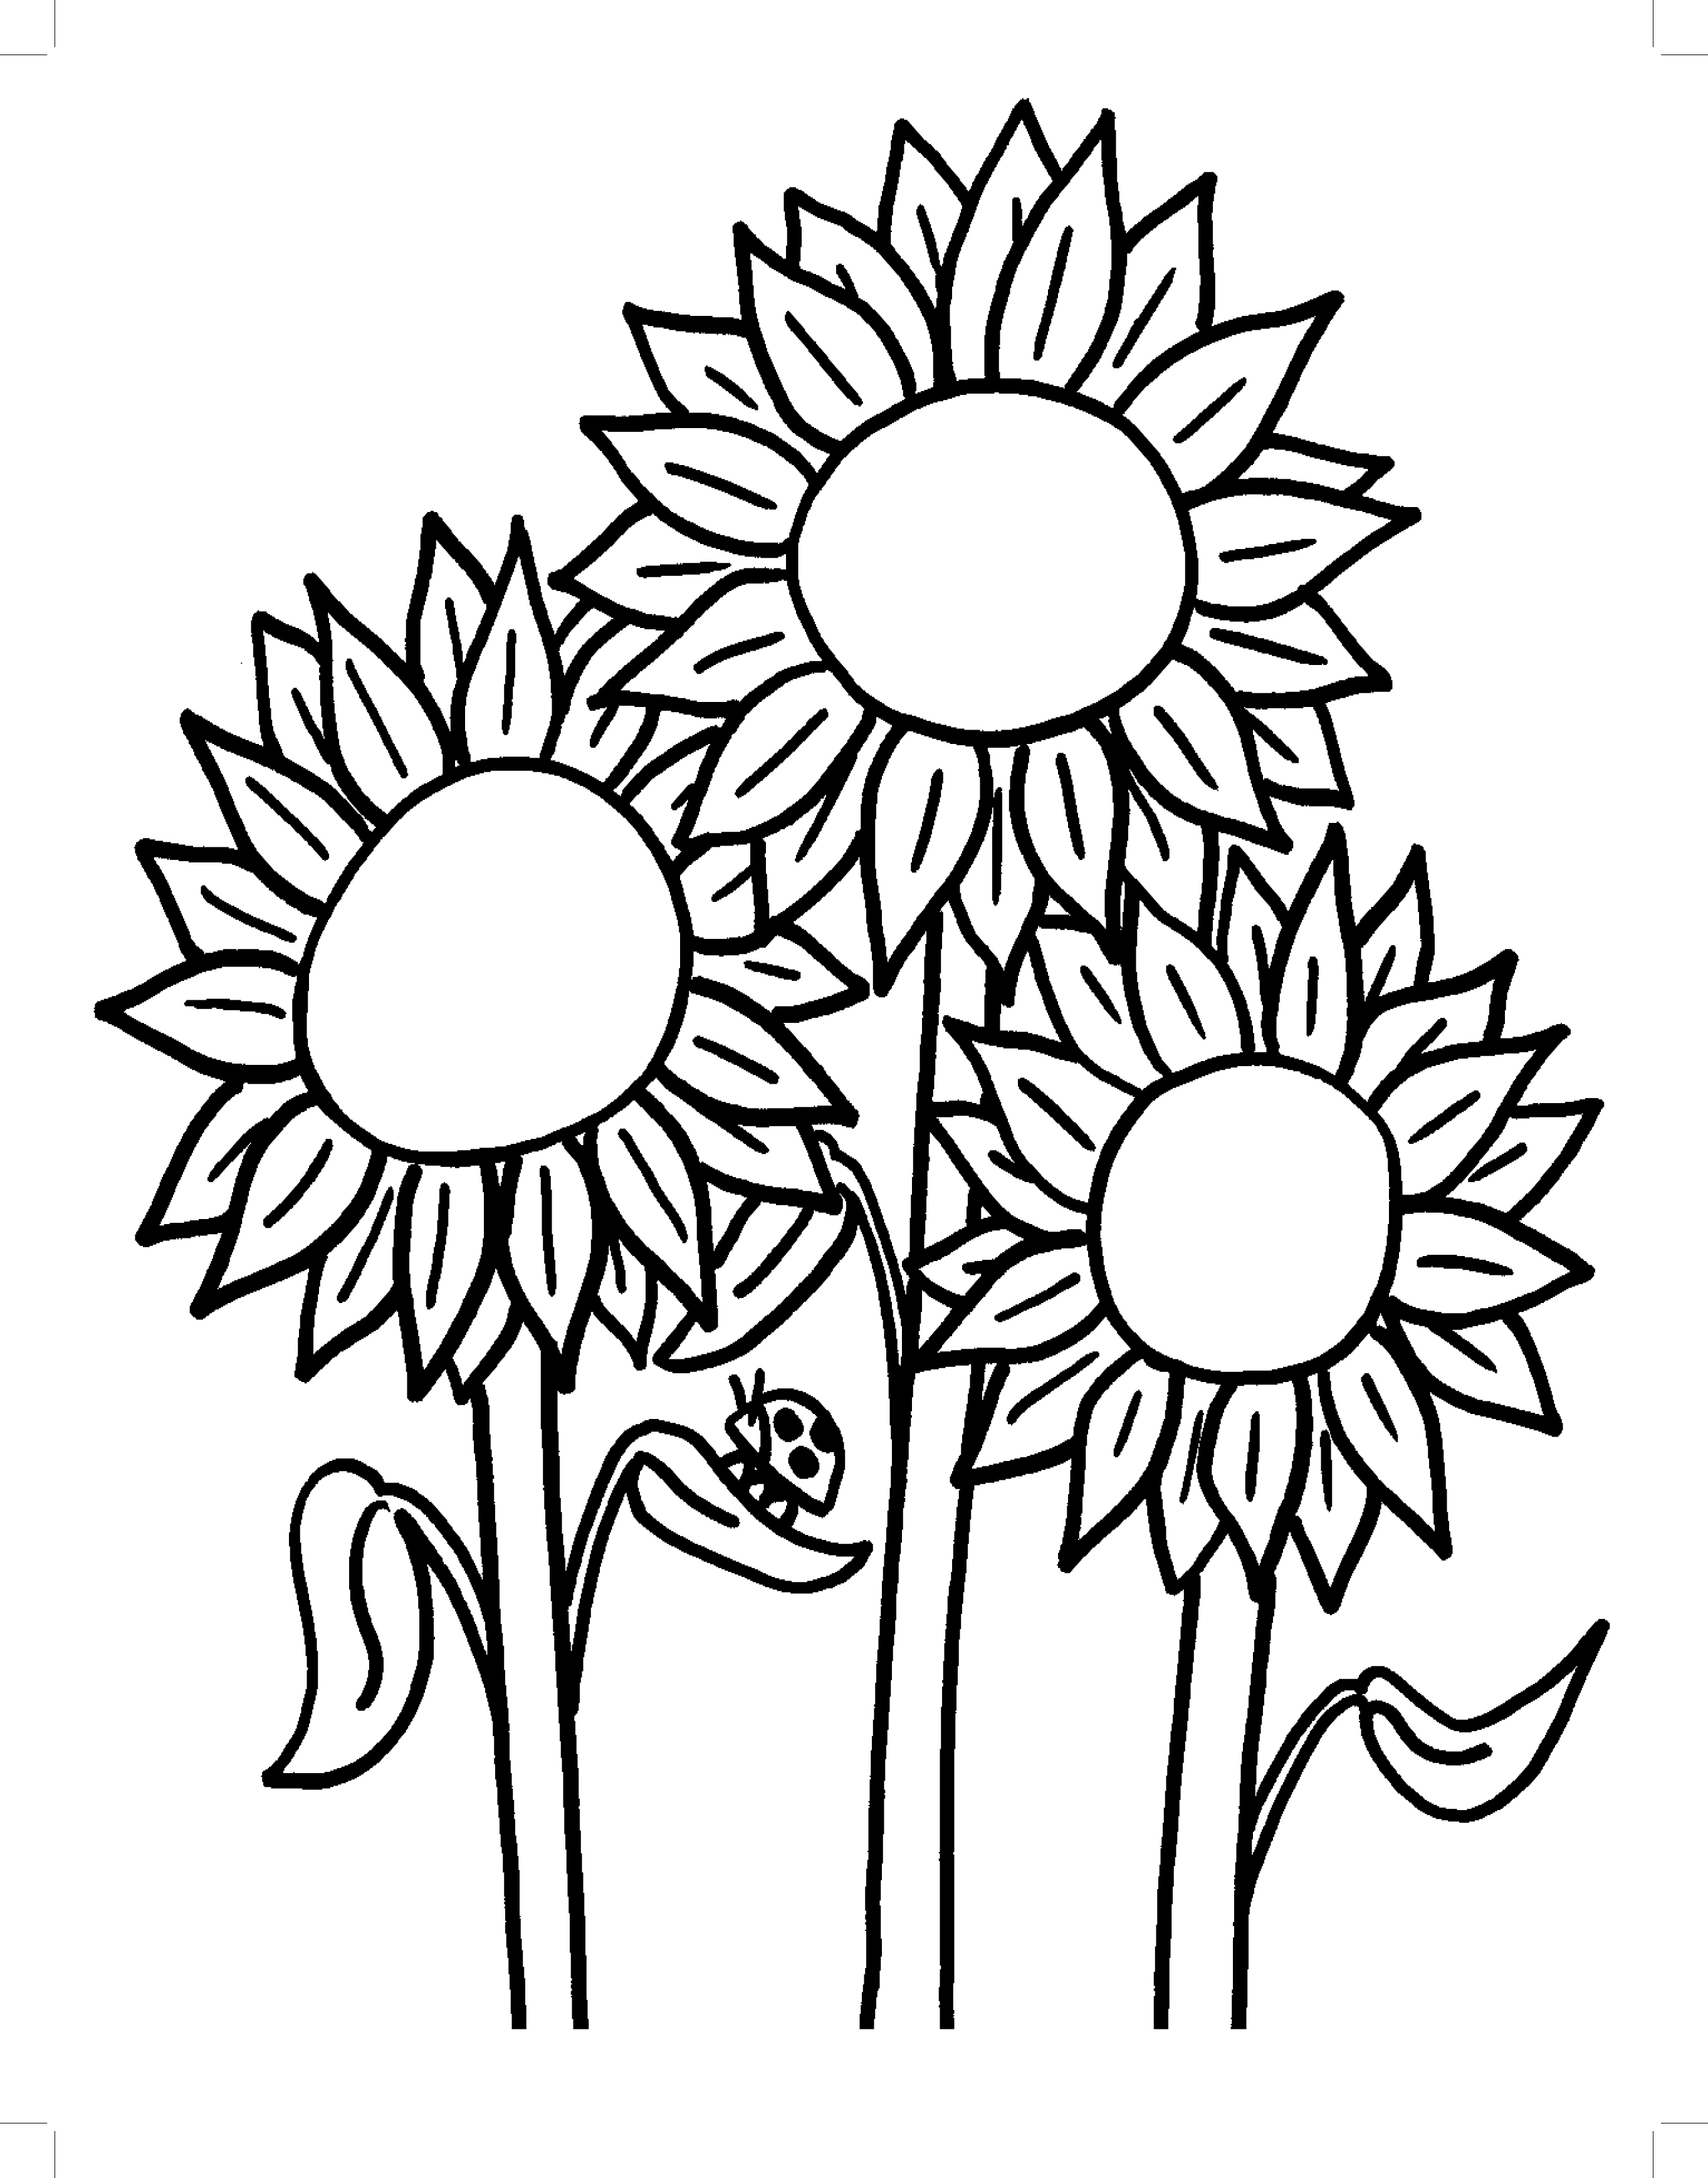 sunflower coloring sheets simple sunflower drawing at getdrawings free download sheets coloring sunflower